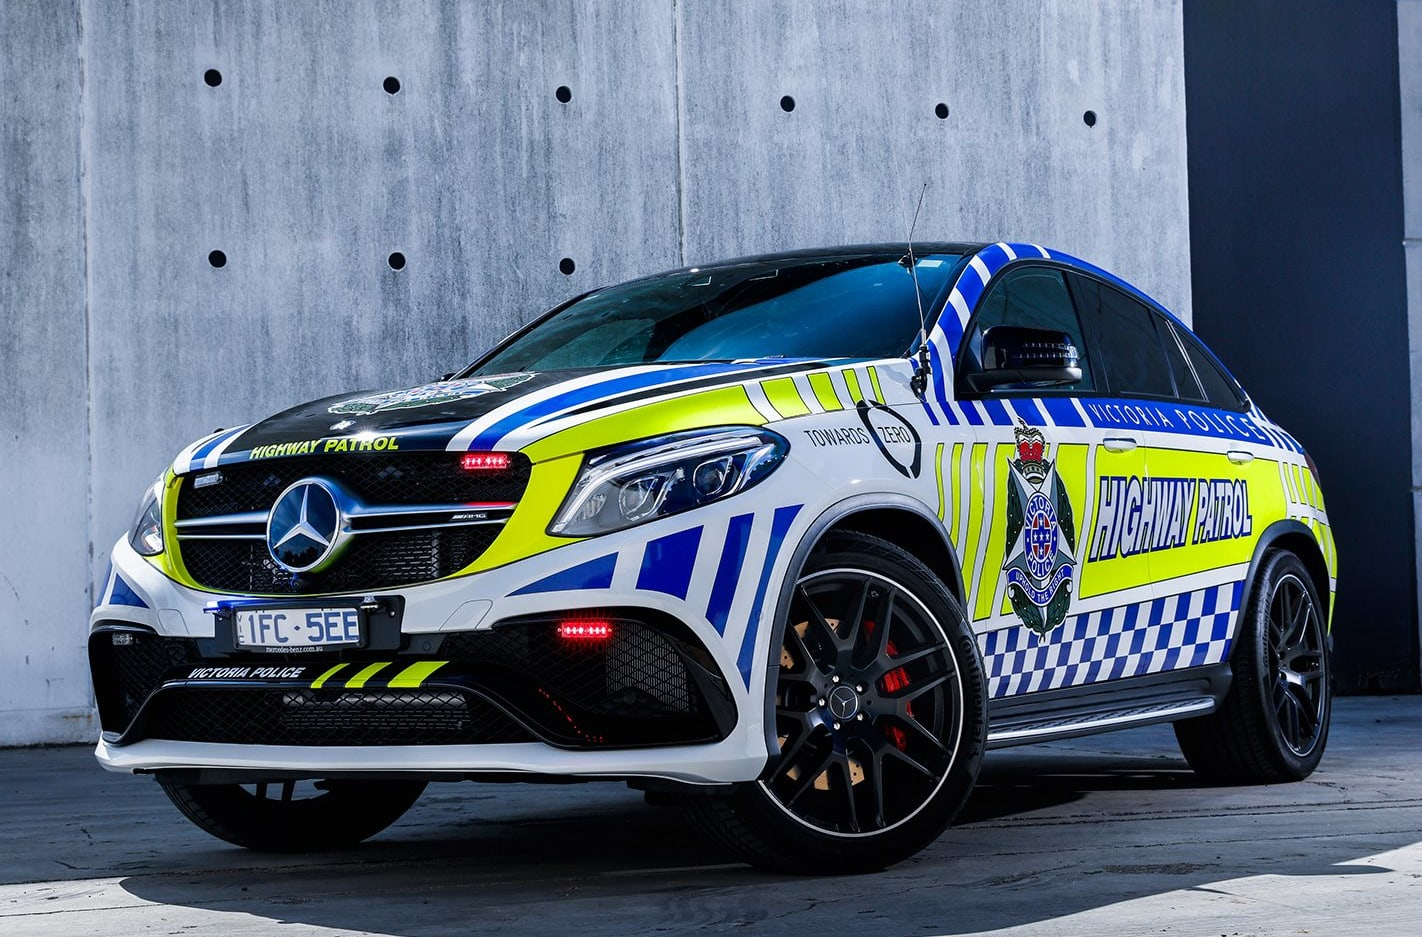 Victoria Police welcome Mercedes-AMG GLE63 S to highway patrol